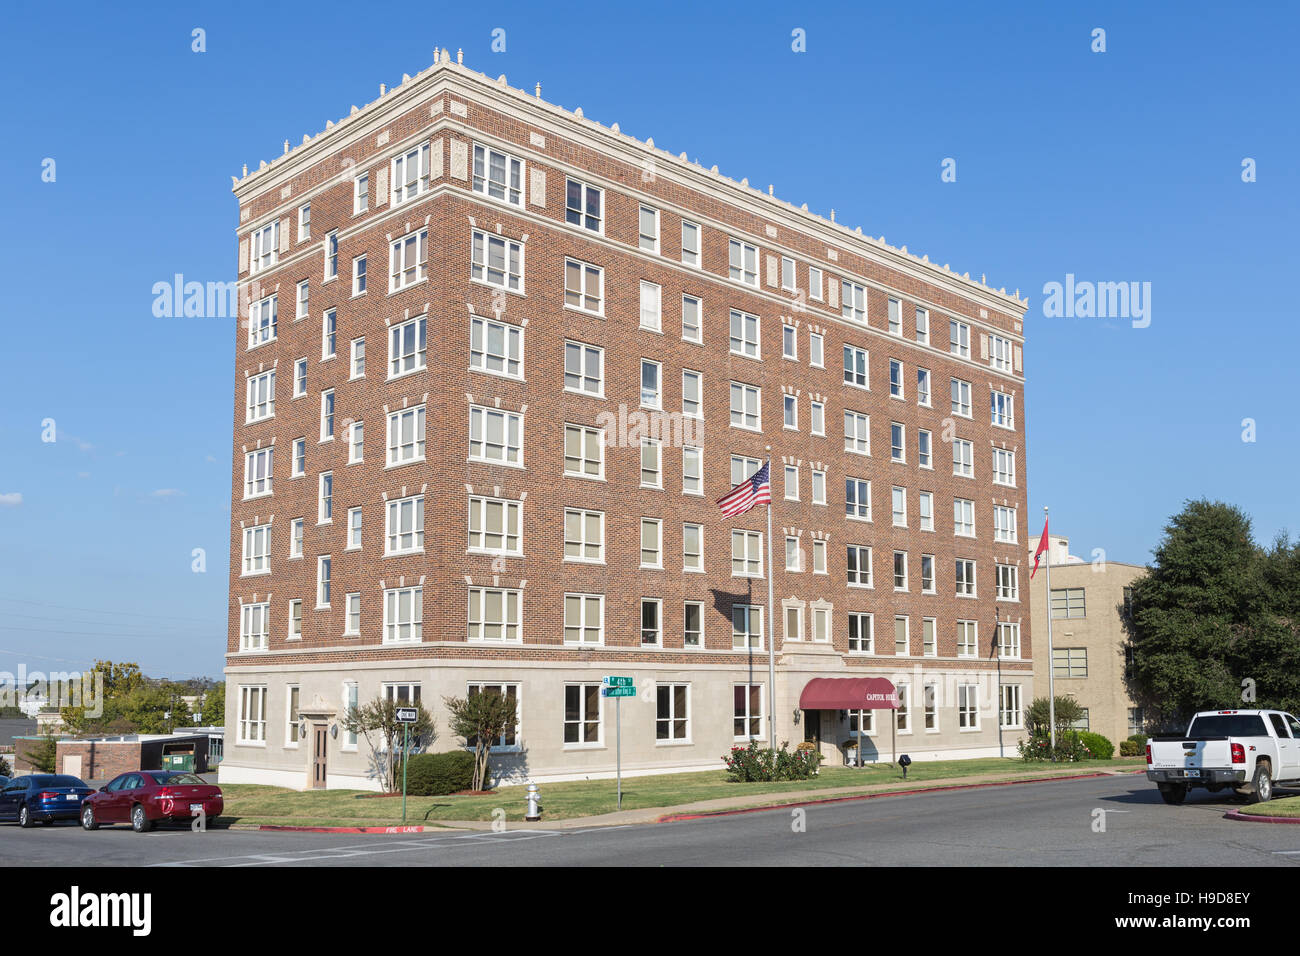 The Capitol Hill apartments in Little Rock, Arkansas Stock Photo